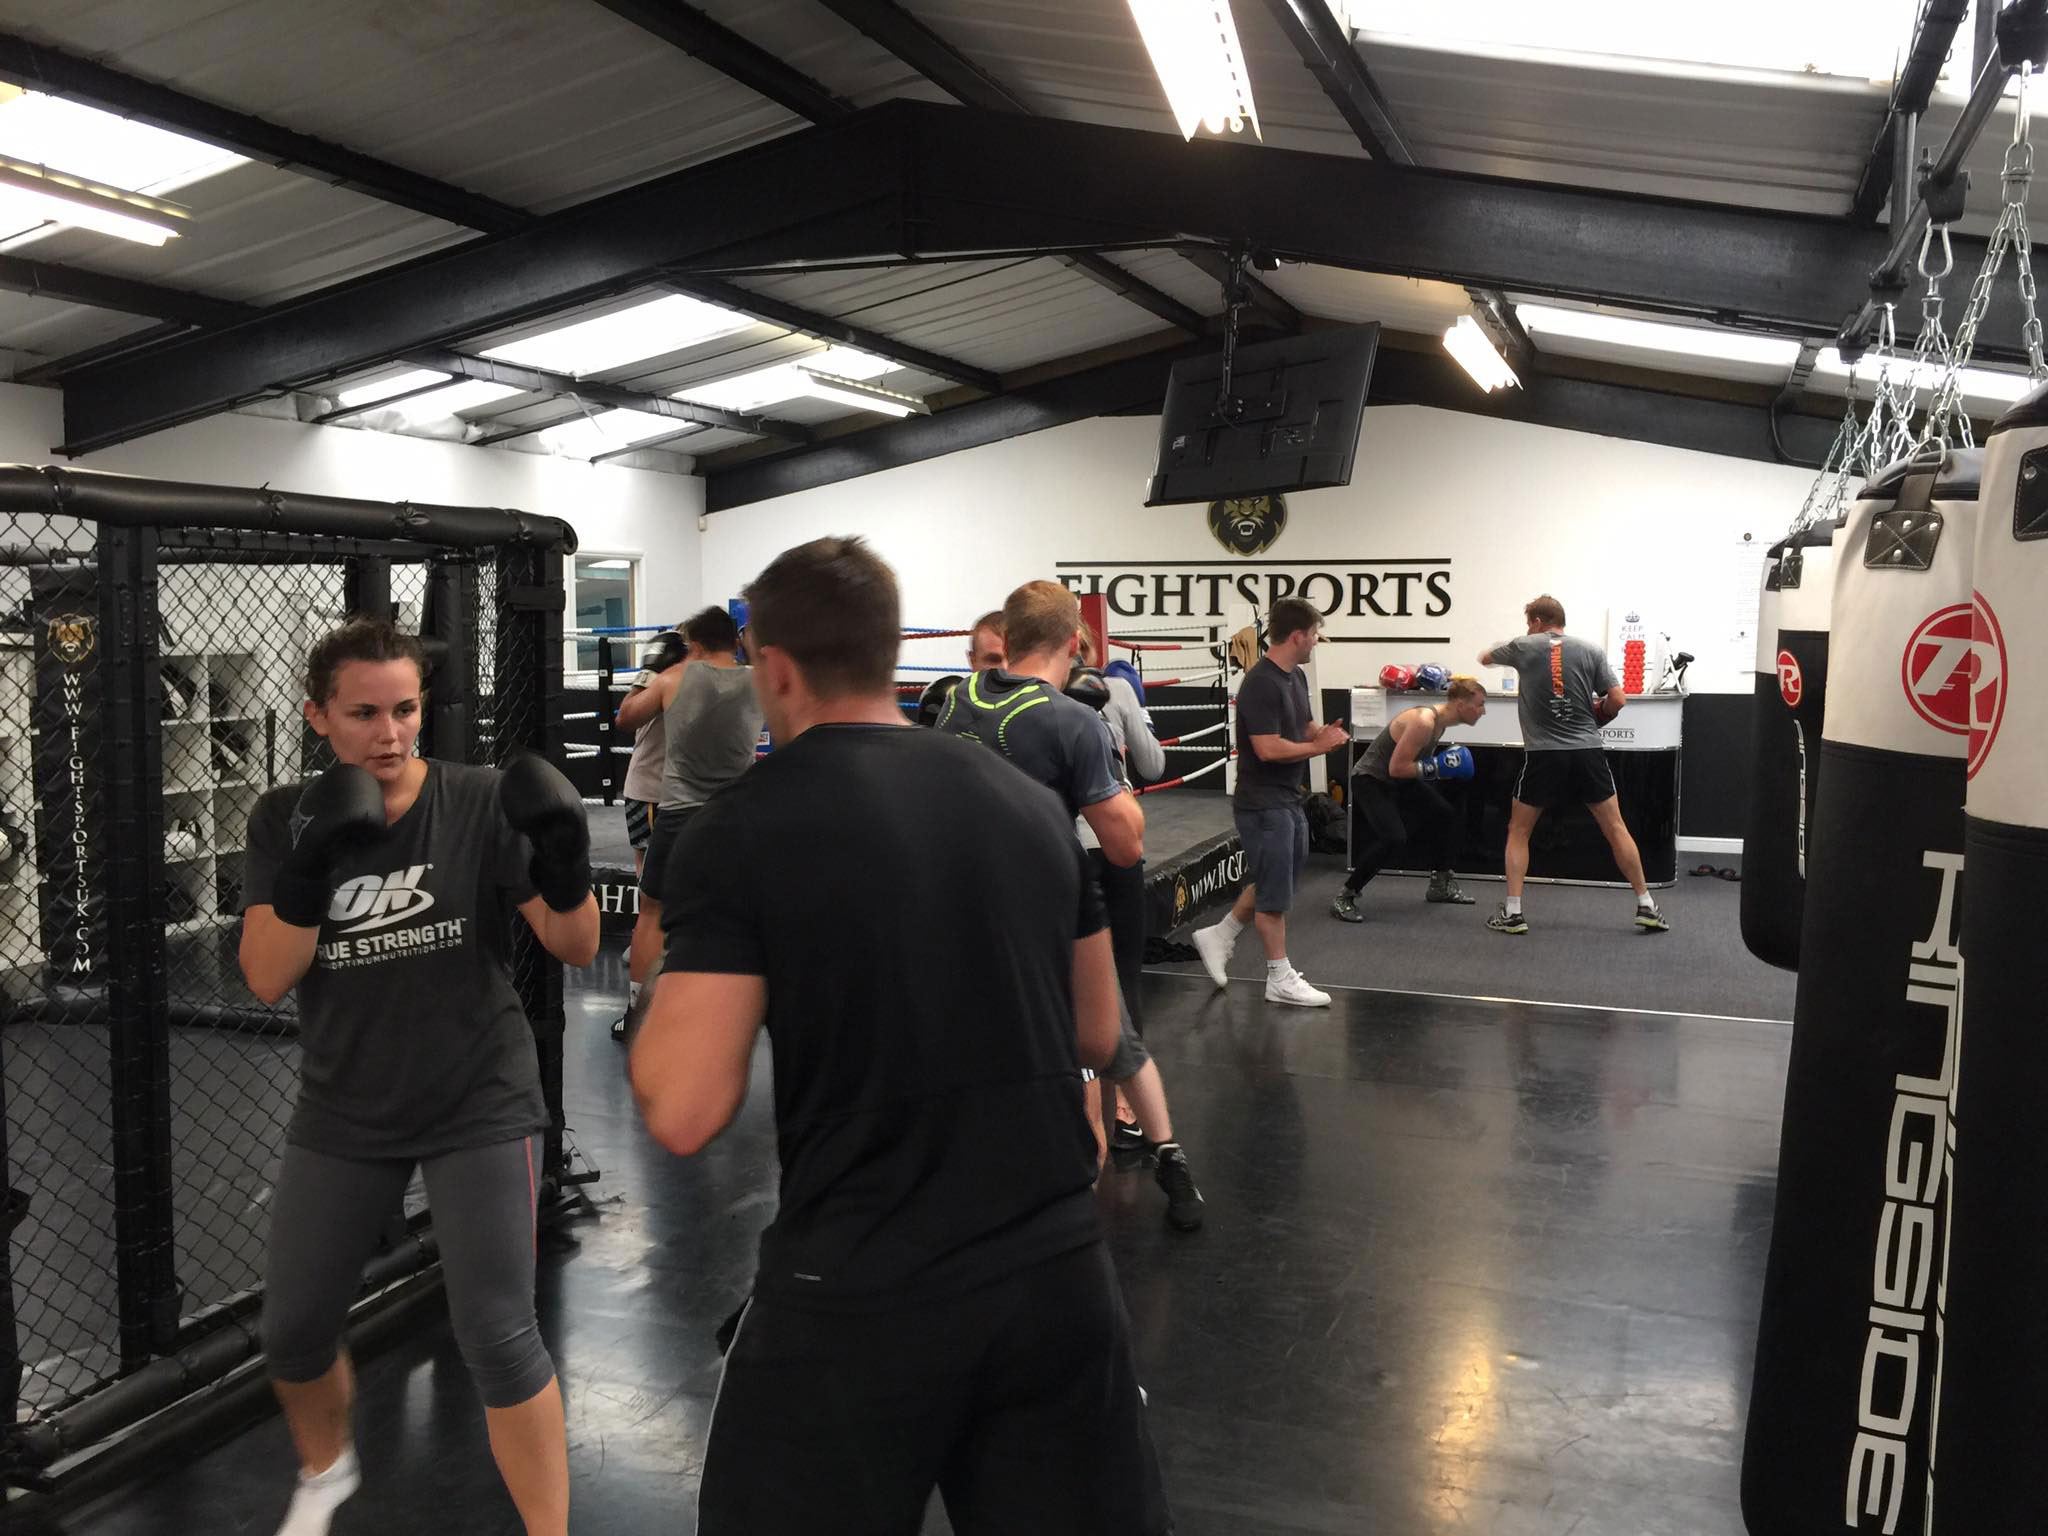 Boxing Gym In Harlow Teaching Boxing In Essex Fightsportsuk